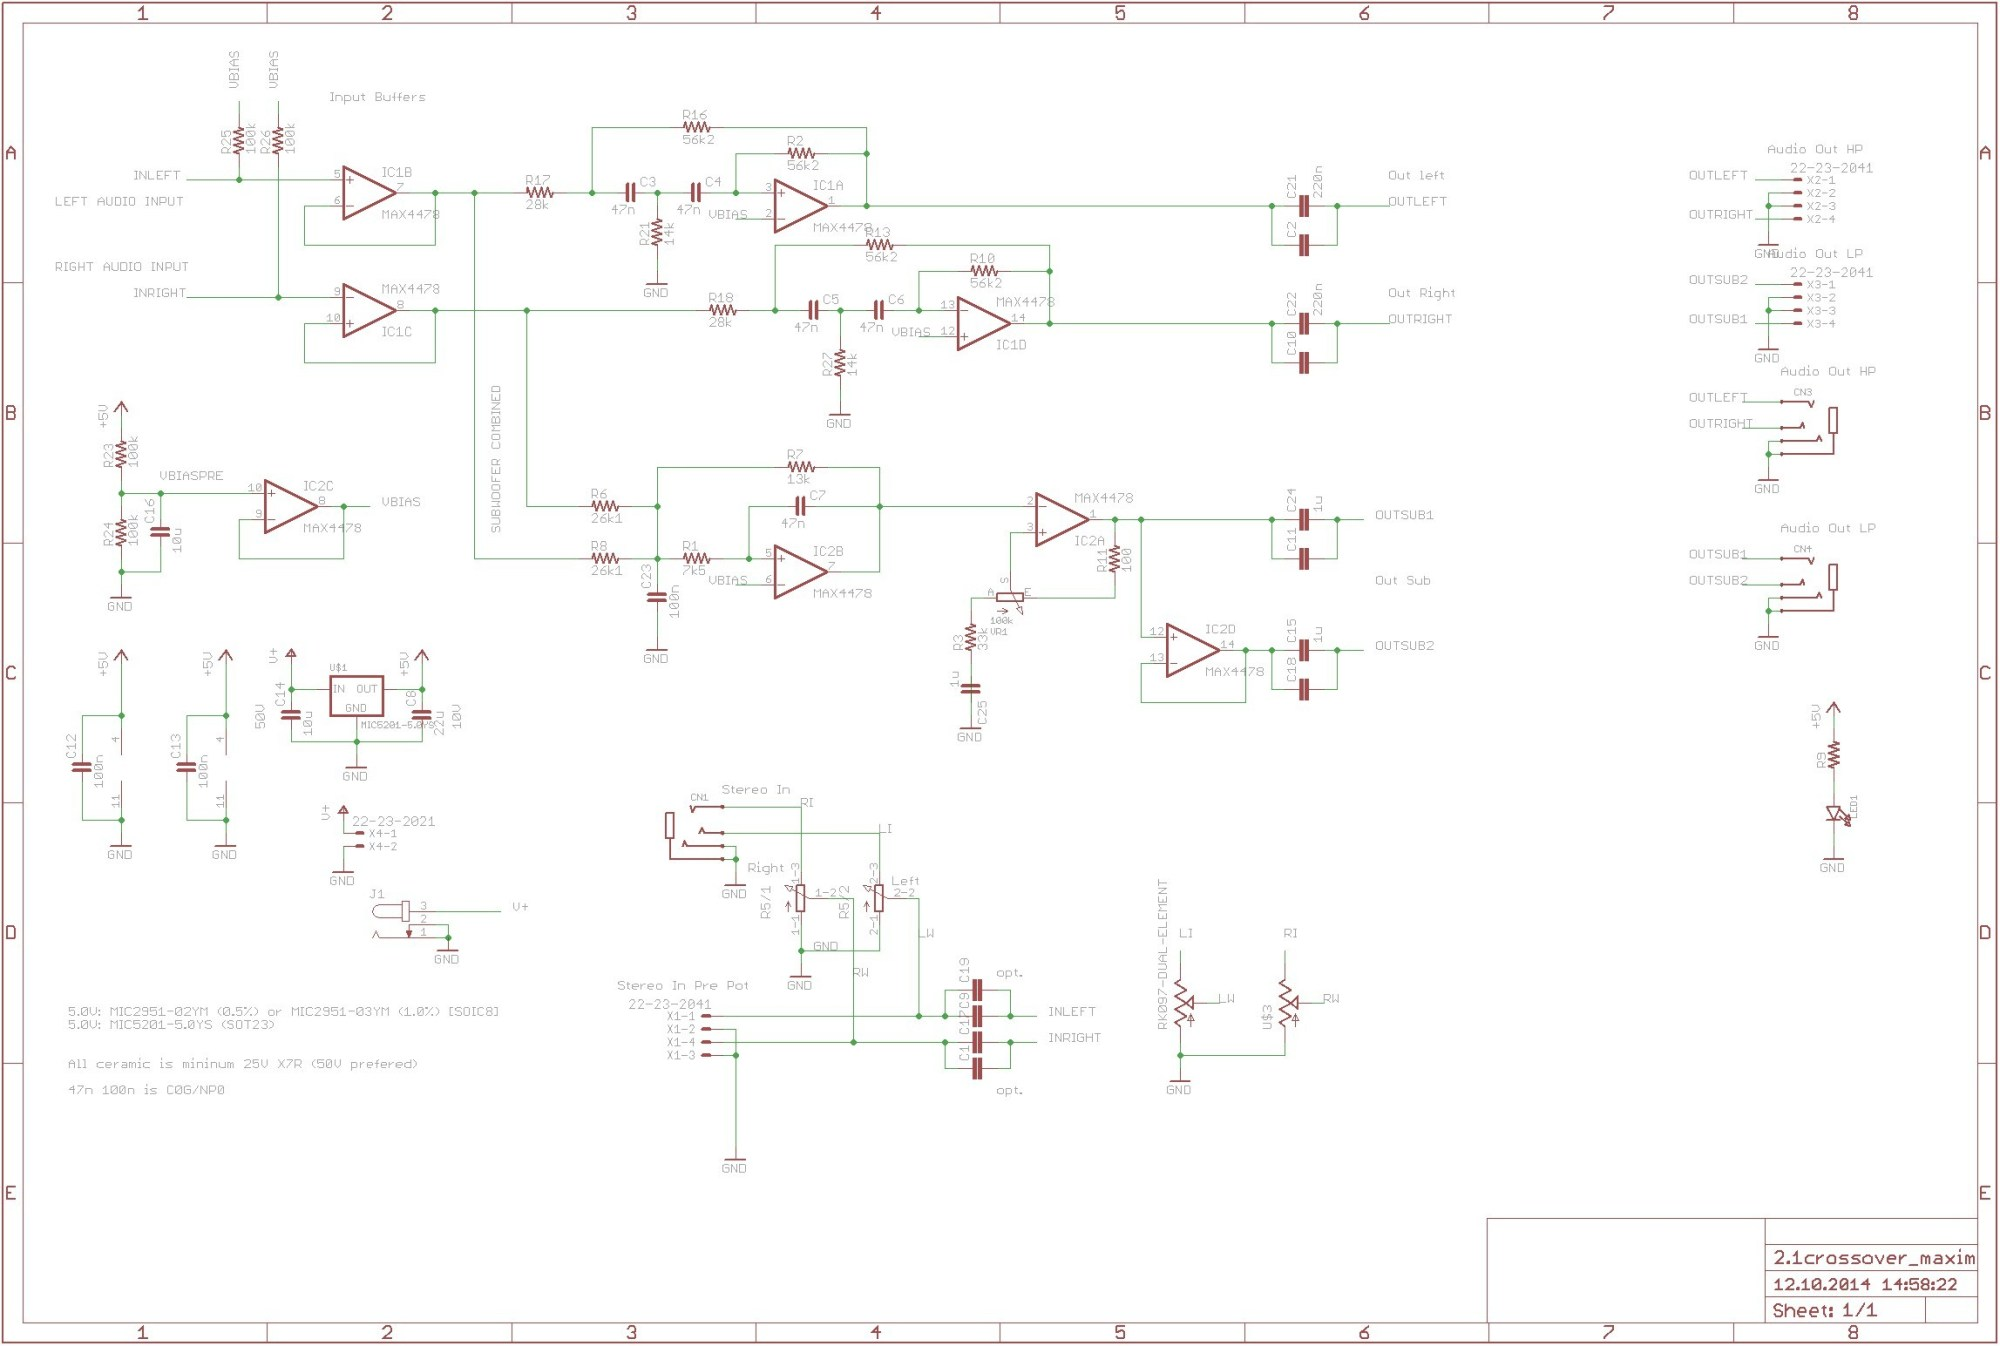 hight resolution of jumper cables diagram best parallel wiring diagram diagram of jumper cables diagram wiring diagram vga cable